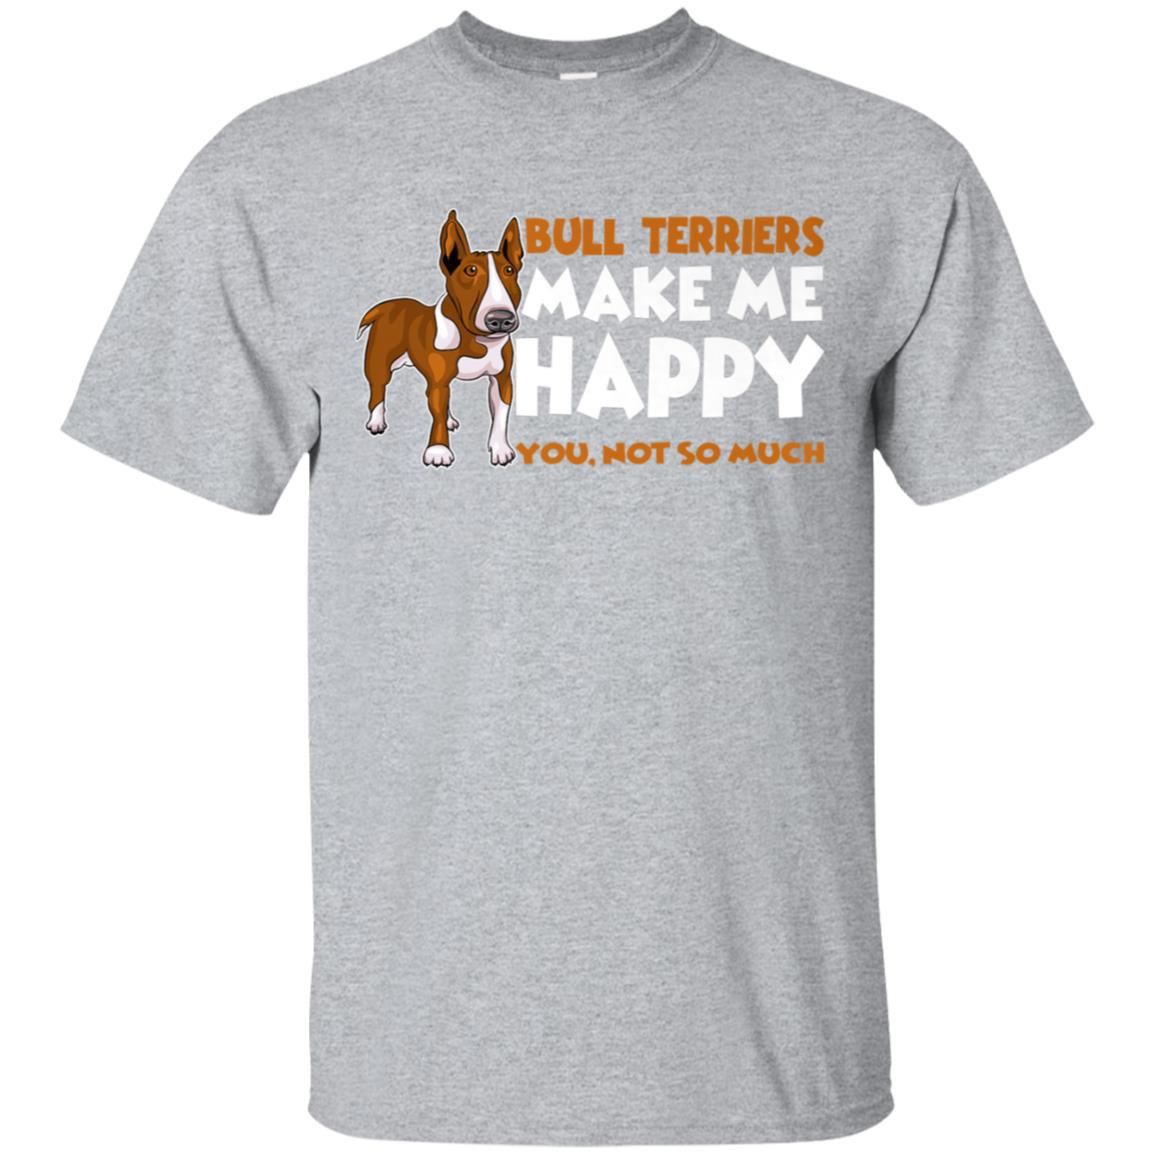 Bull Terriers Make Me Happy Funny T-shirt For Dog Lover Gift 99promocode